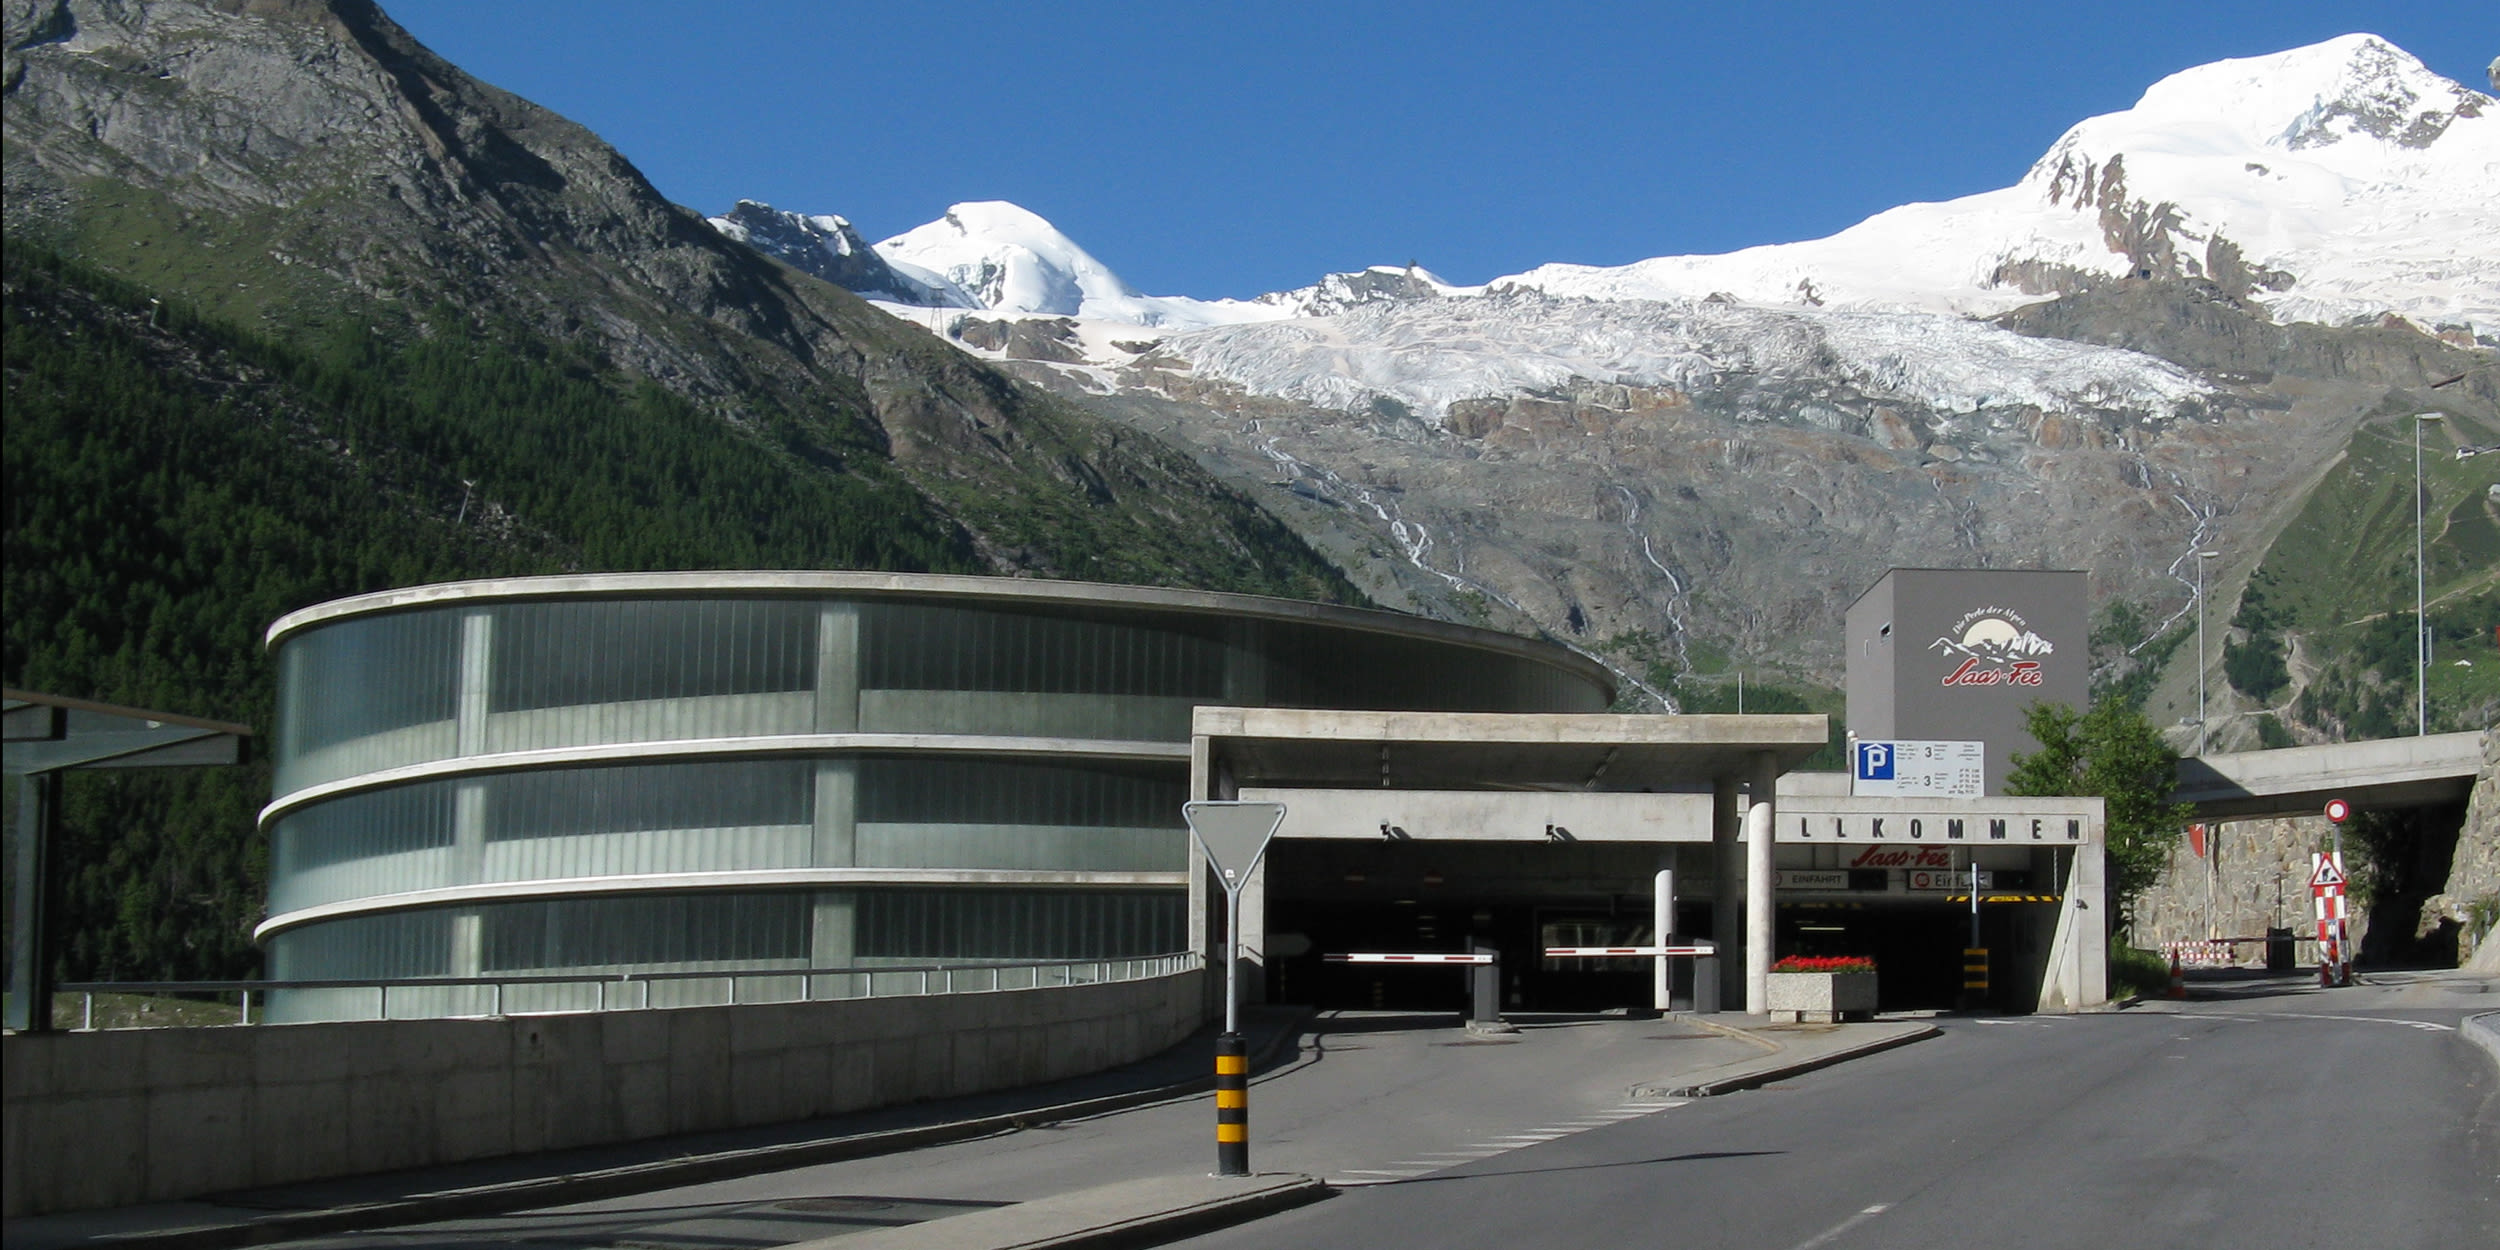 [Translate to English:] Parkhaus in Saas-Fee